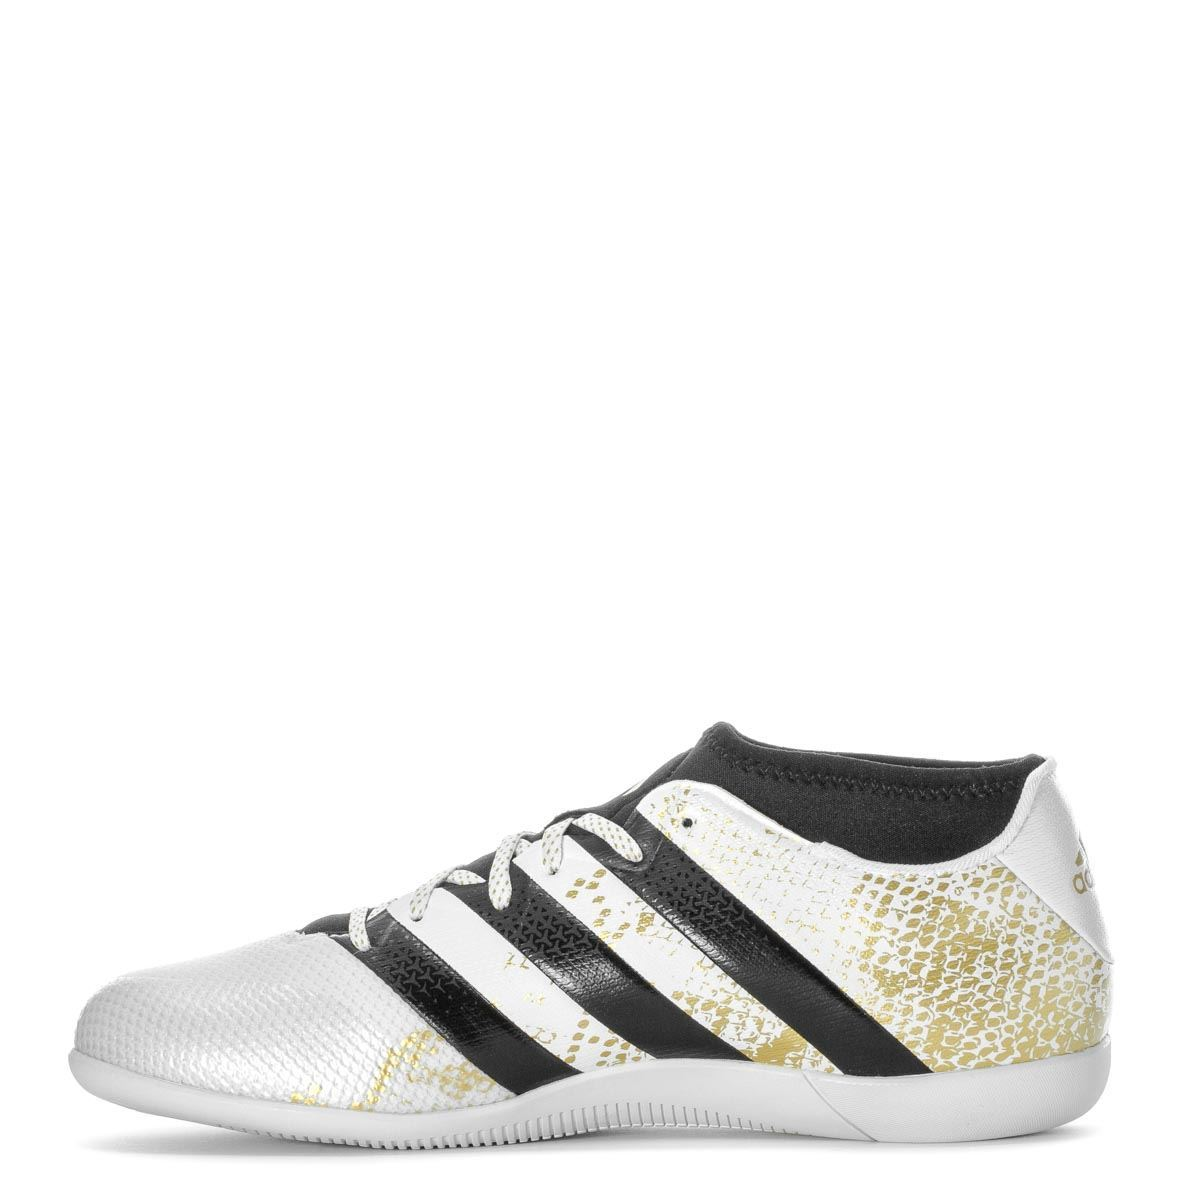 5db98902b0a6 ... adidas Ace 16.3 Primemesh Indoor Football Shoes Mens White/Gold Soccer  Trainers